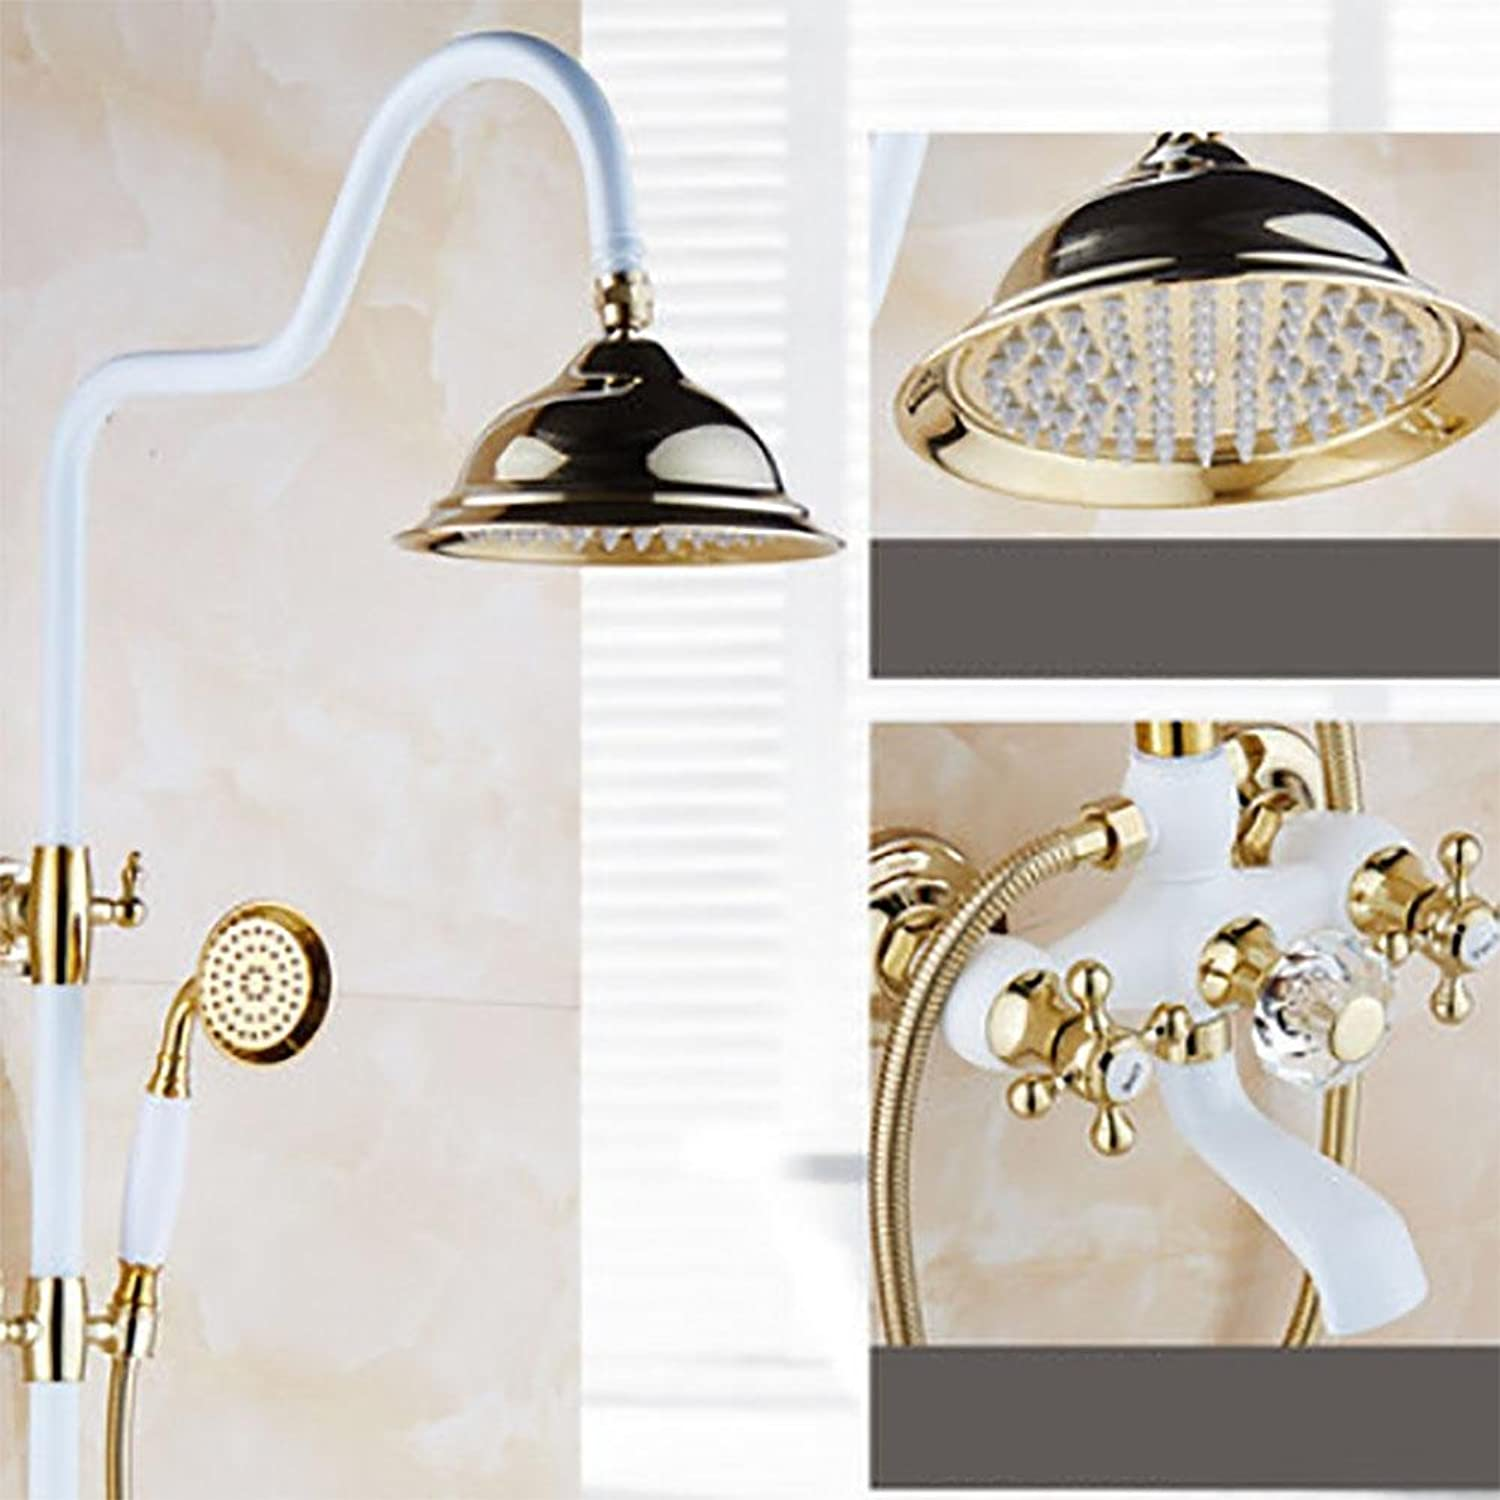 Polished golden & Grilled White Paint Shower Bathtub Faucet Wall Mount Bathroom Rainfall Shower Faucet , F